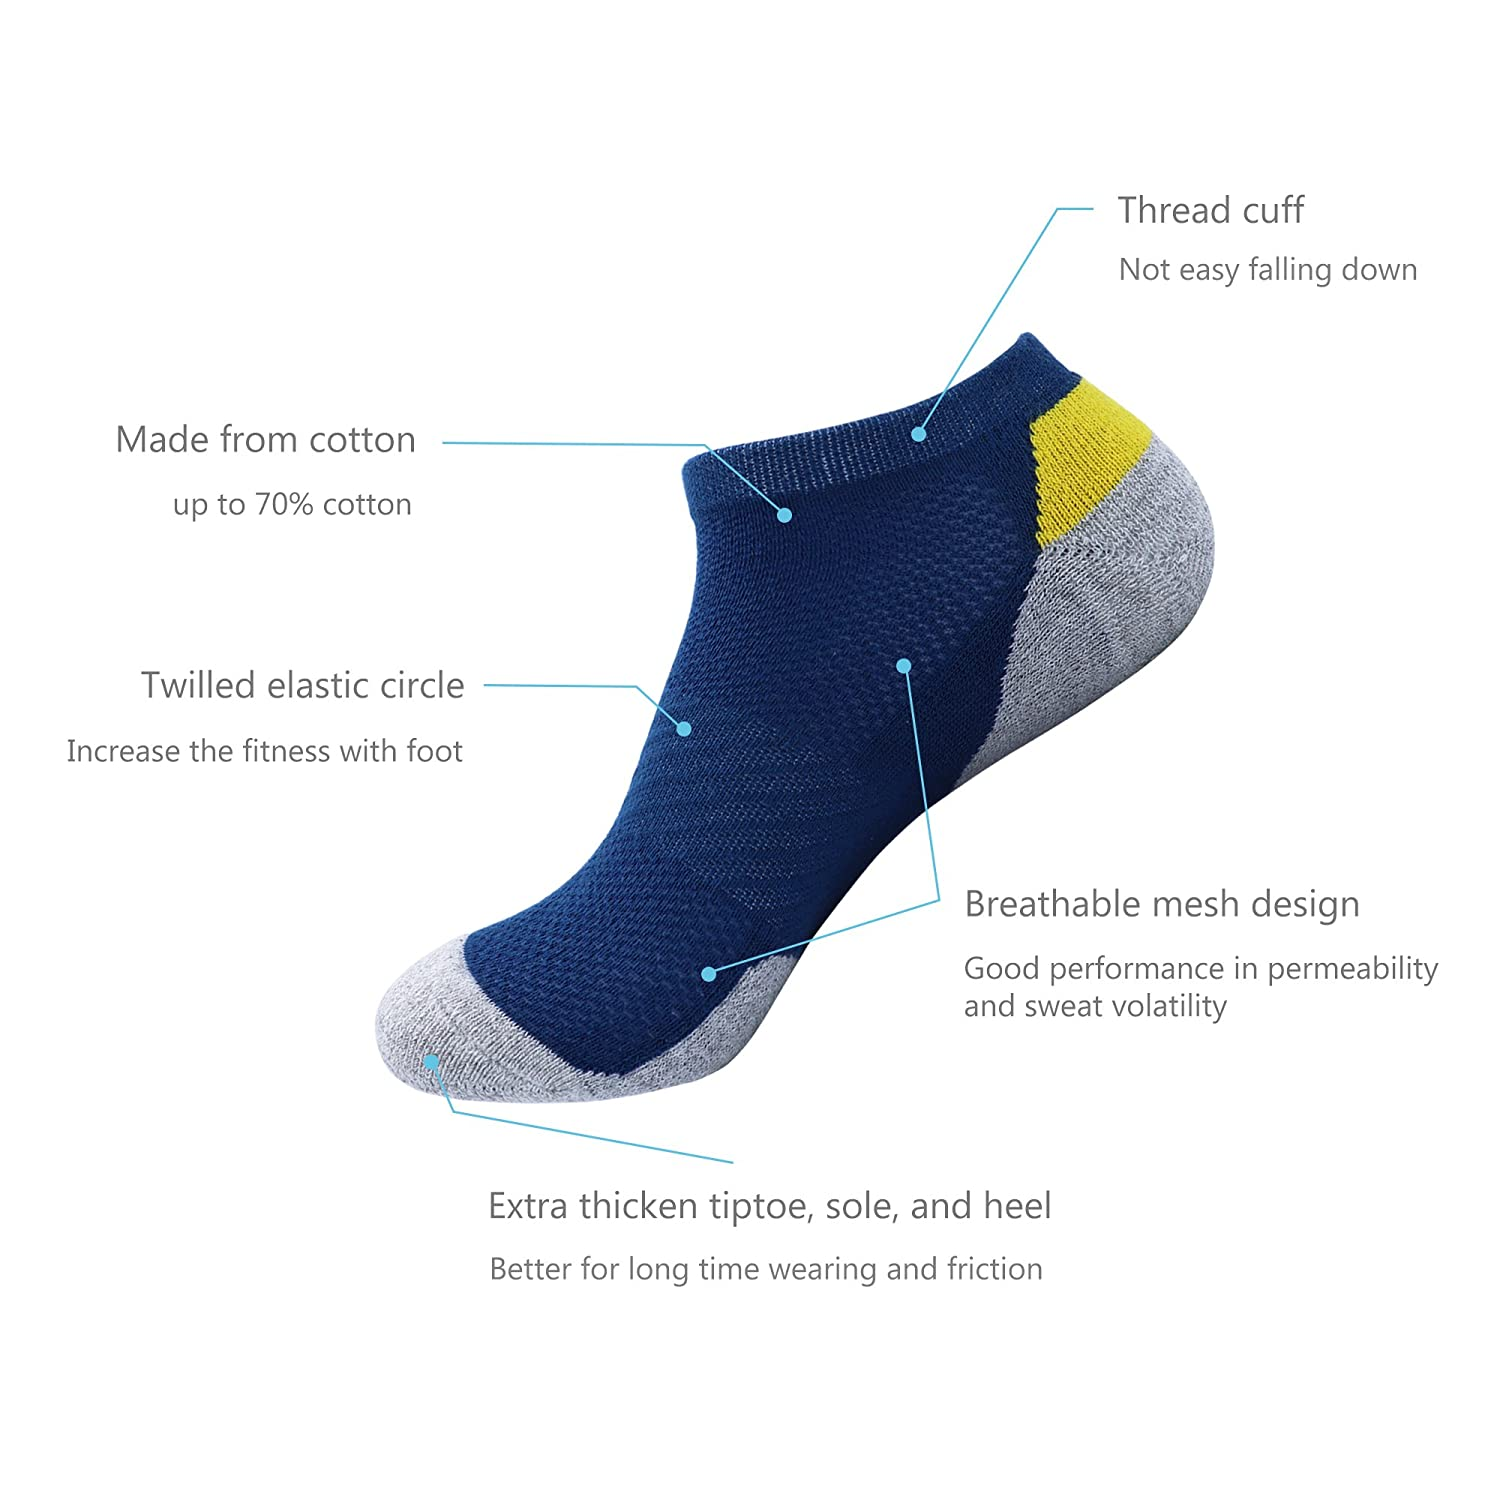 Hiking Thick Breathable Socks for Walking Climbing and Running Ankle Socks Jogging REAMTOP 5prs Athletic Men Socks